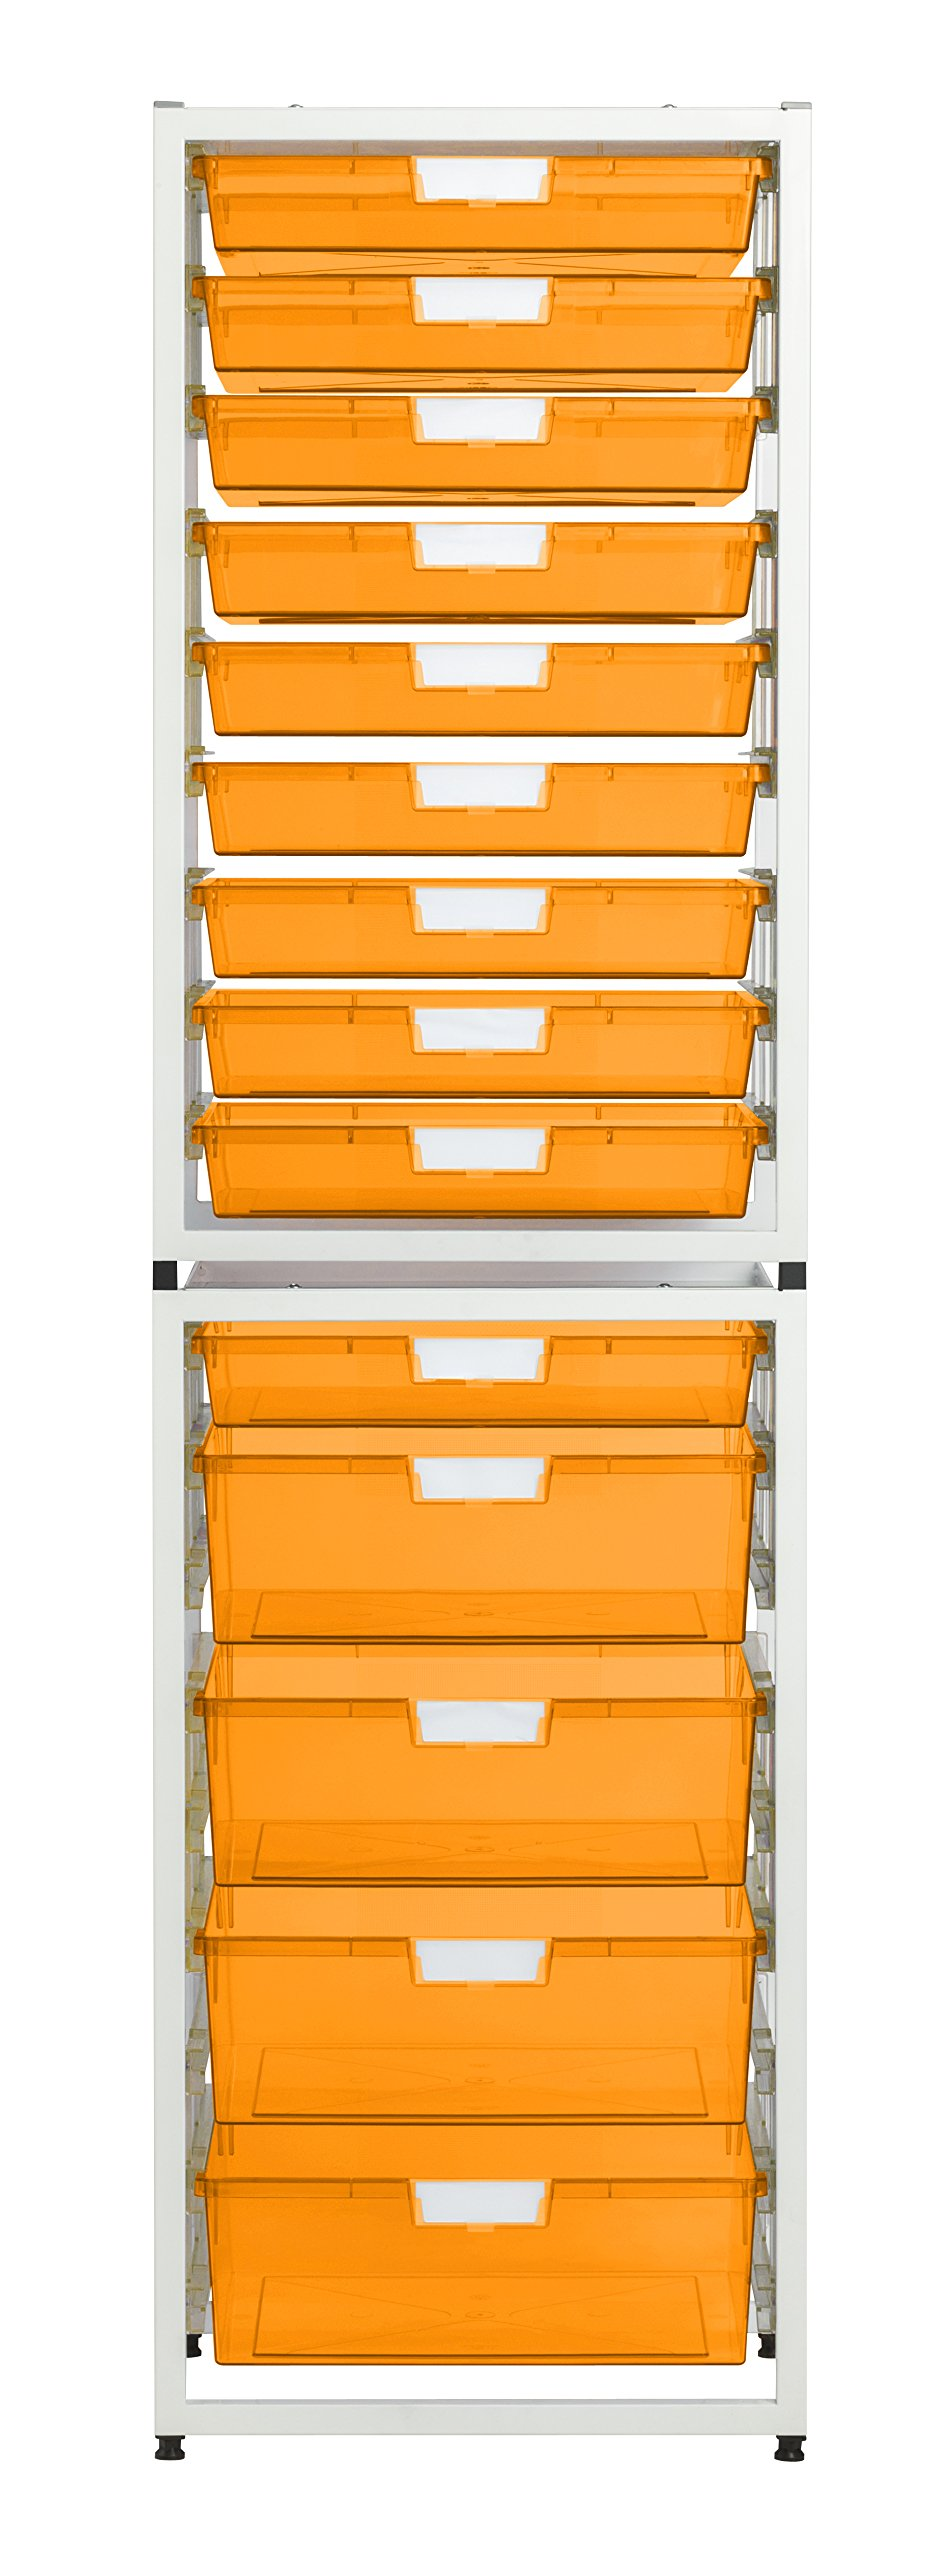 StorSystemUSA CE2319WFO 14 Tray Wall Tower Crystal 'Wide Line' Metal Unit, Neon Orange by StorSystemUSA